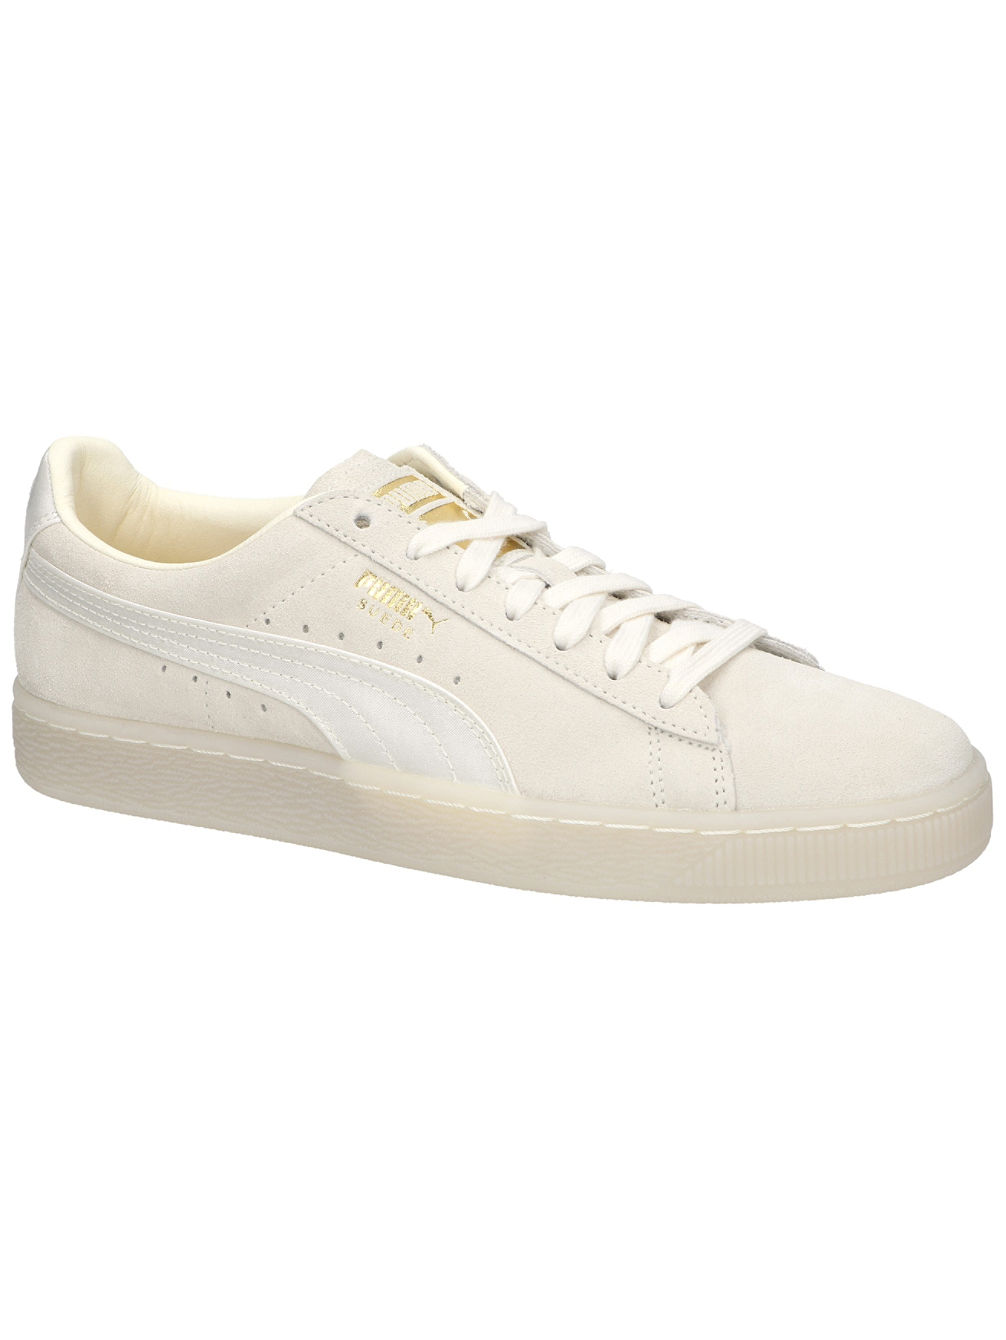 24fd9b69c42ab7 Buy Puma Suede Classic Satin Sneakers online at Blue Tomato